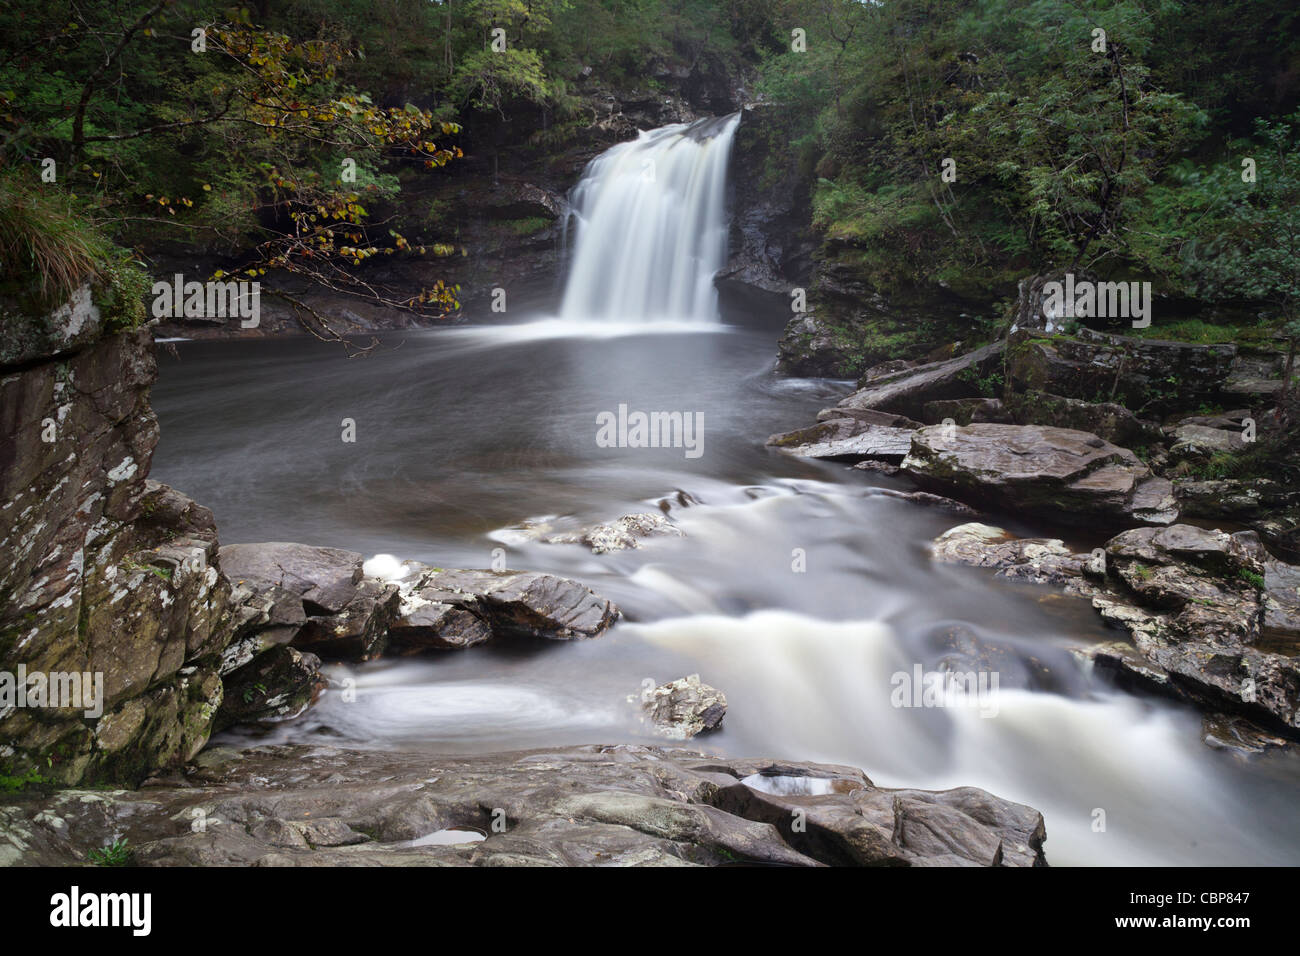 Falls of Falloch, Stirling, Scotland, long exposure. - Stock Image